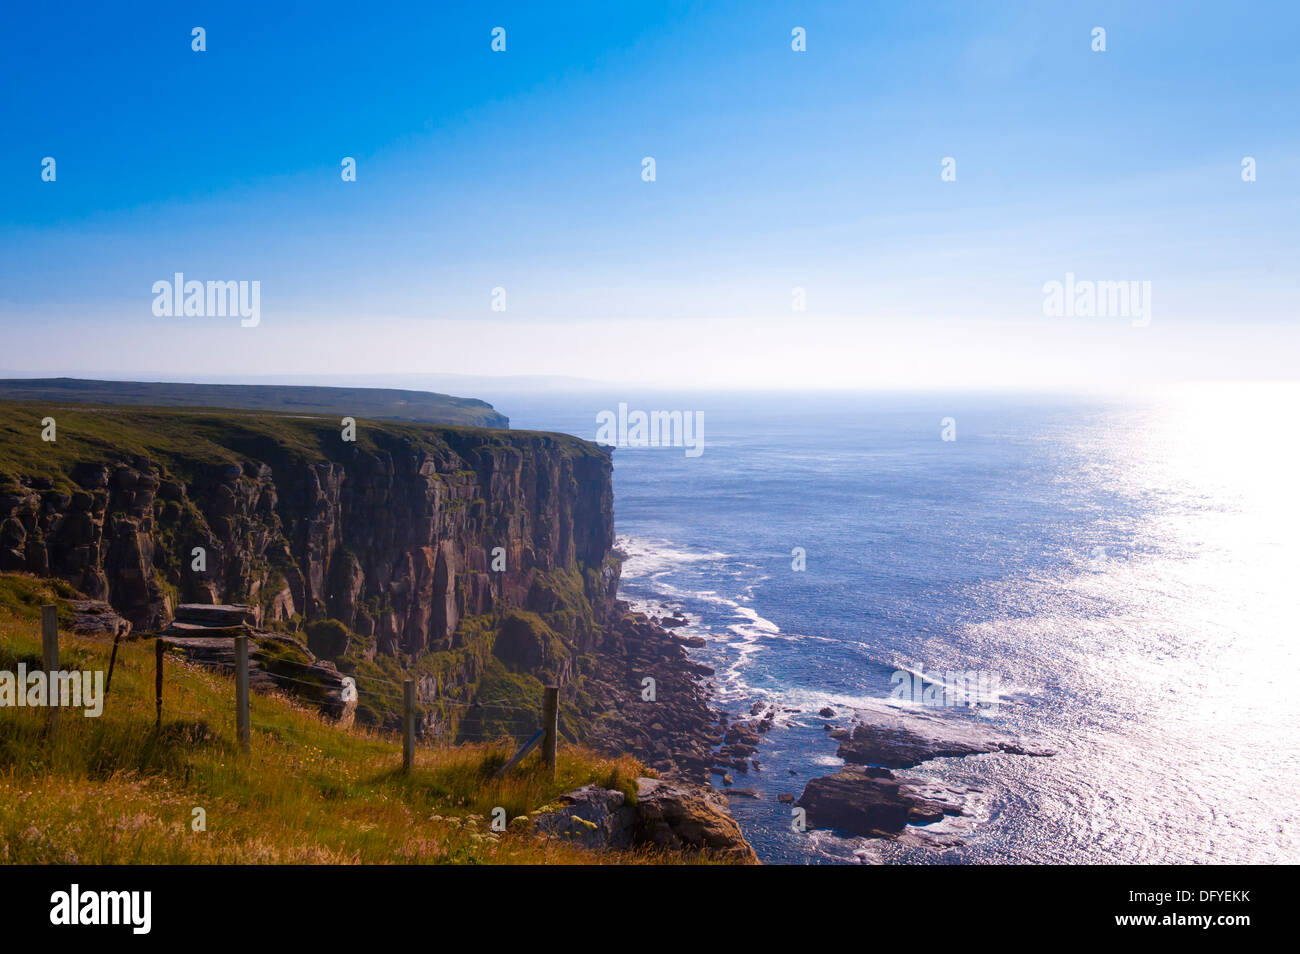 Cliffs at sea with strong sun reflecting on water - Stock Image